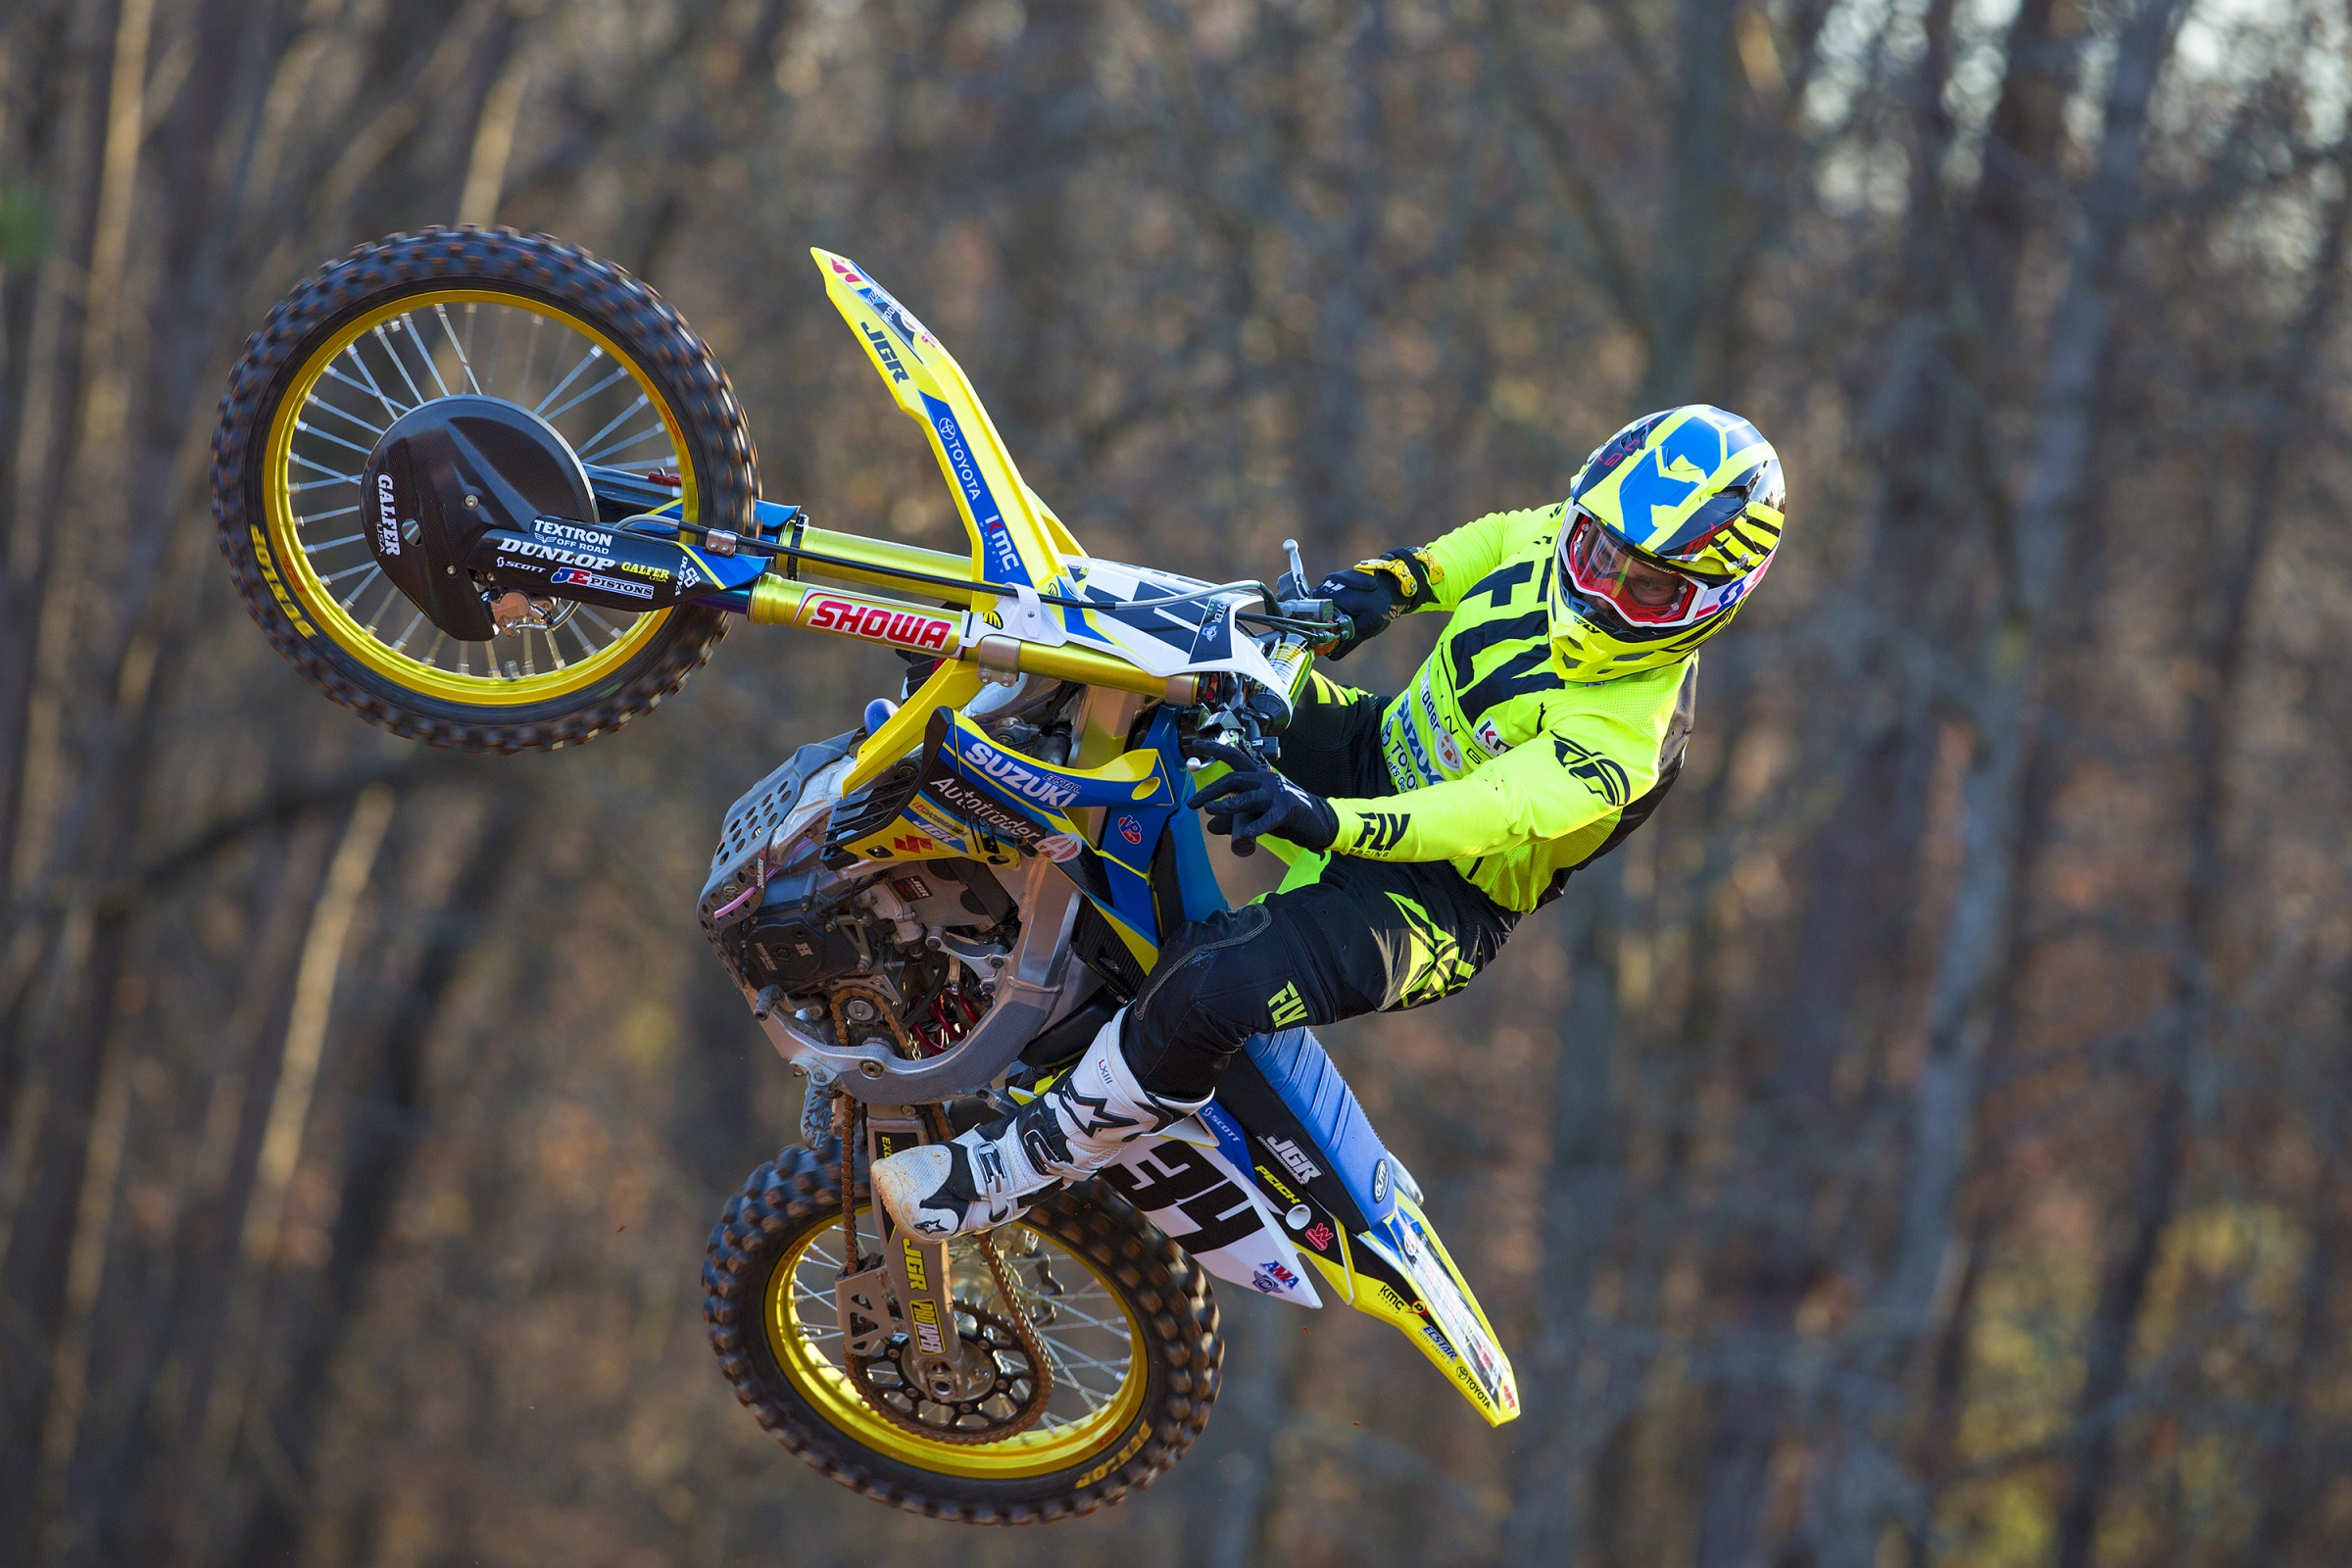 Peick, who placed sixth overall in Monster Energy Supercross, will continue to ride for Autotrader/Yoshimura Suzuki.